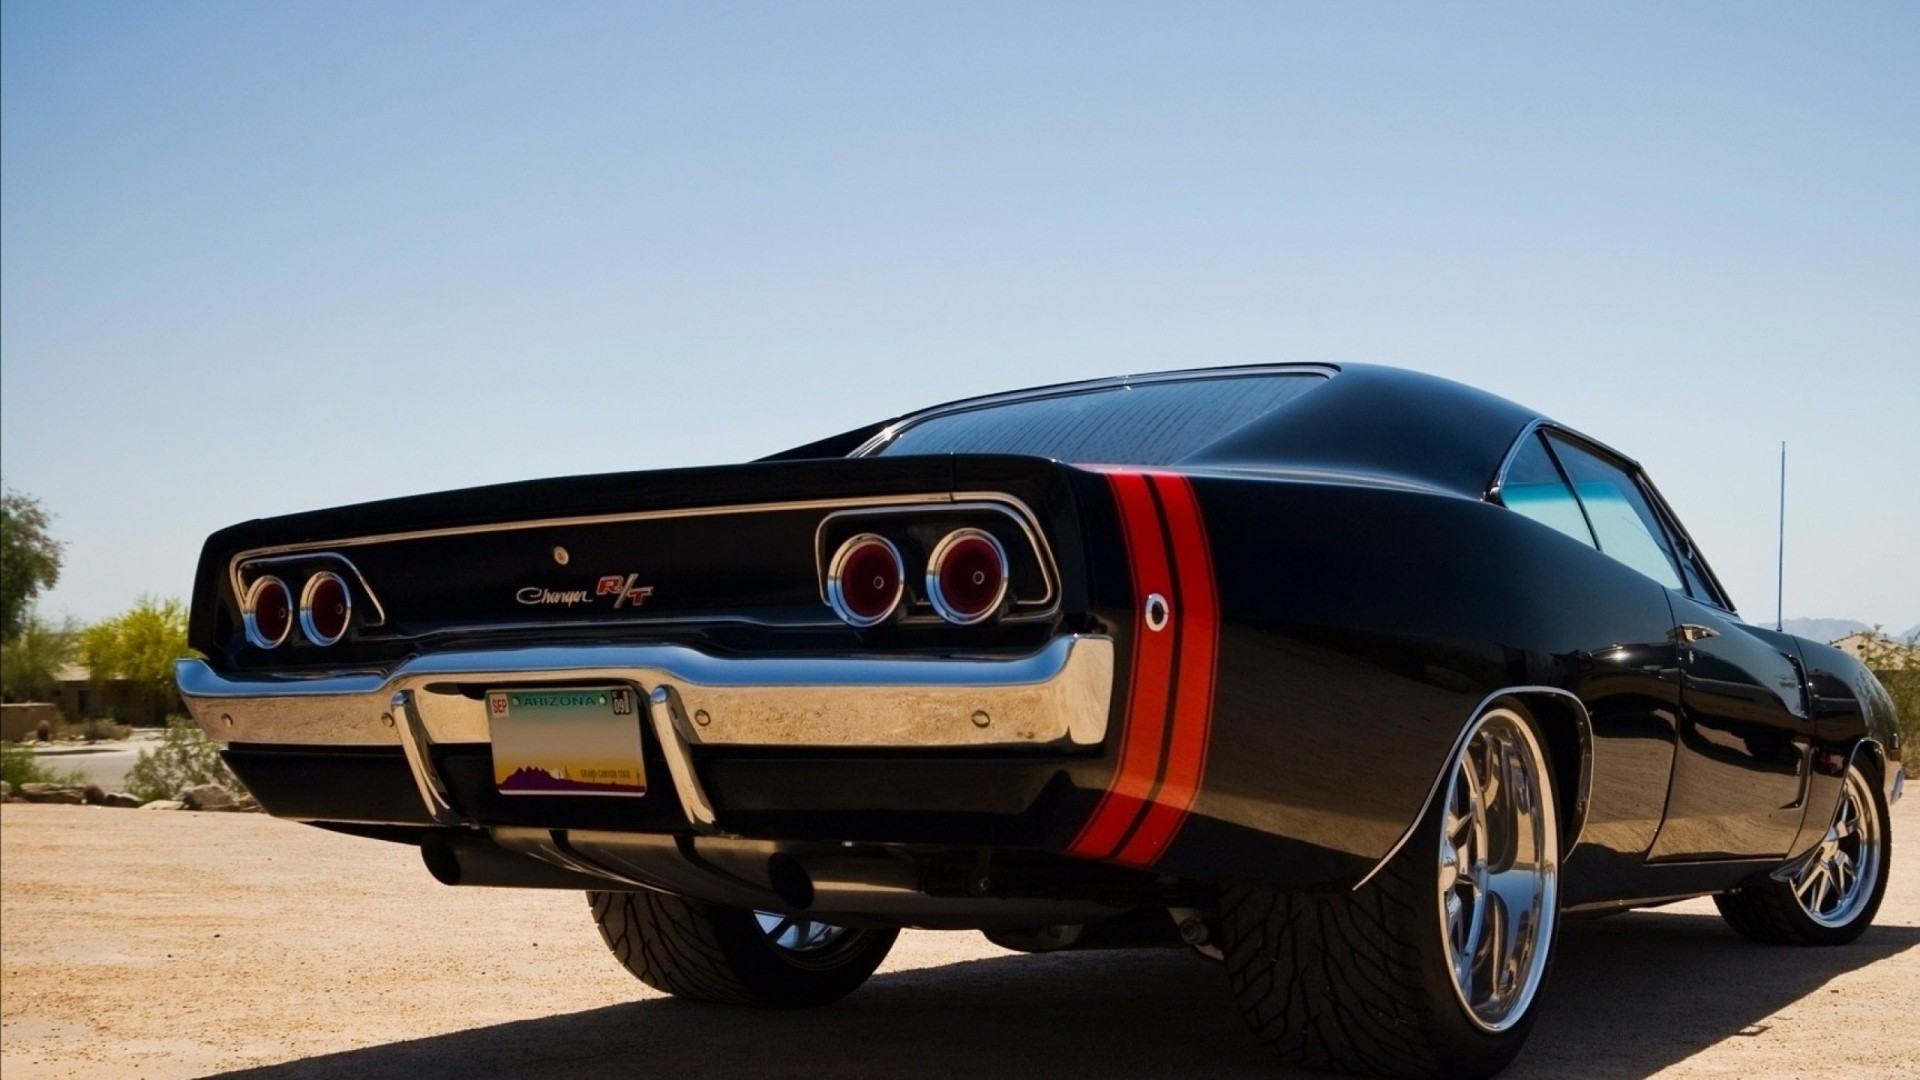 Dodge Charger Wallpaper Full HD